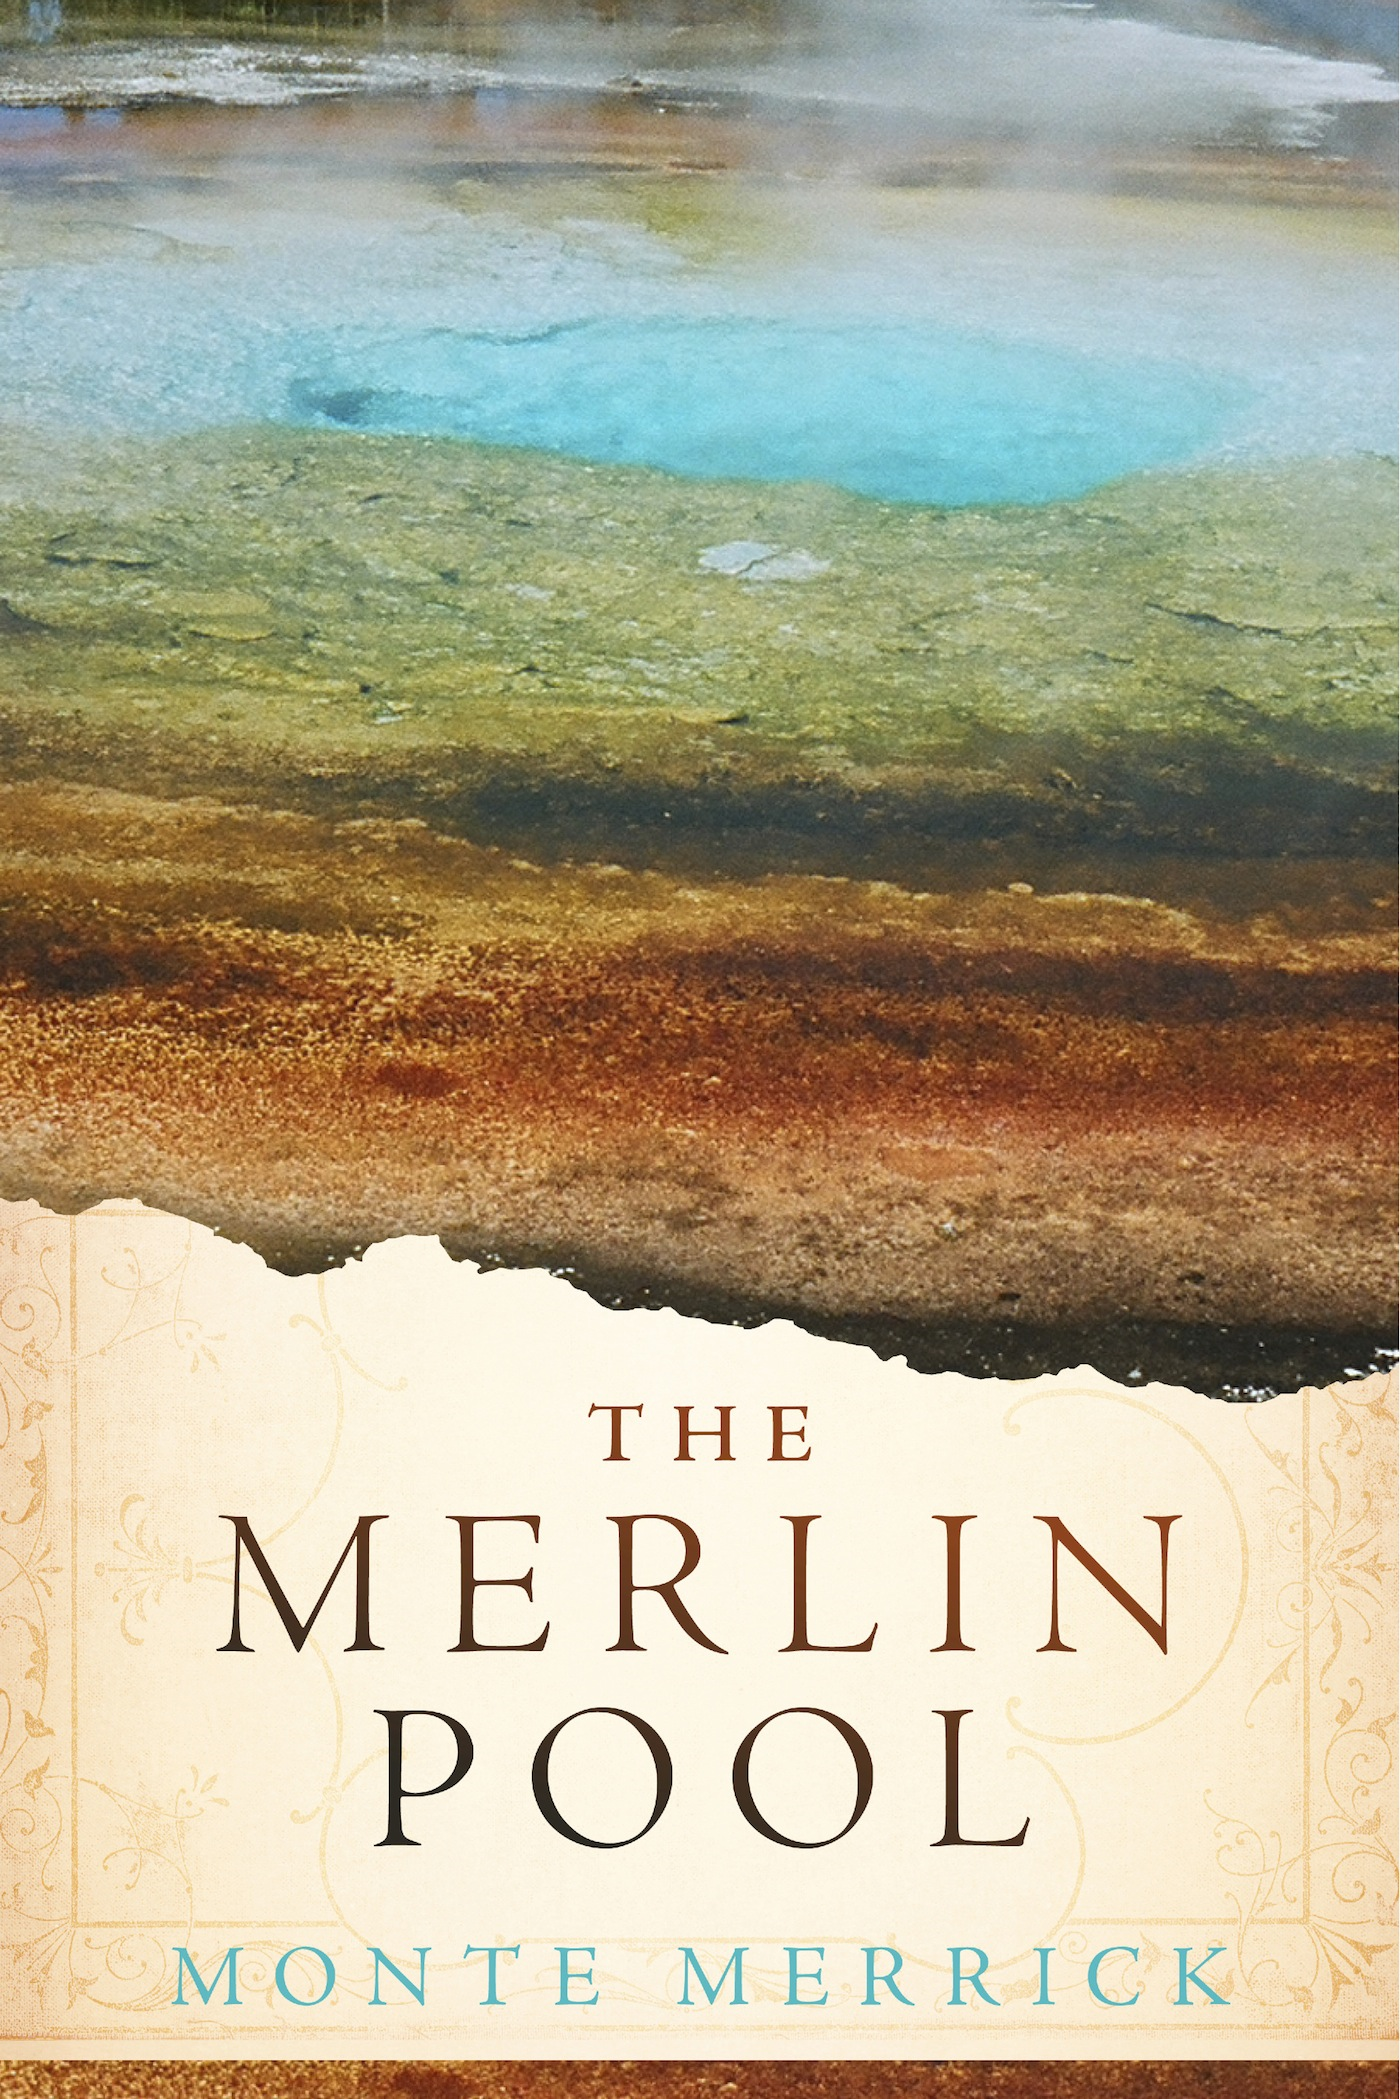 The Merlin Pool